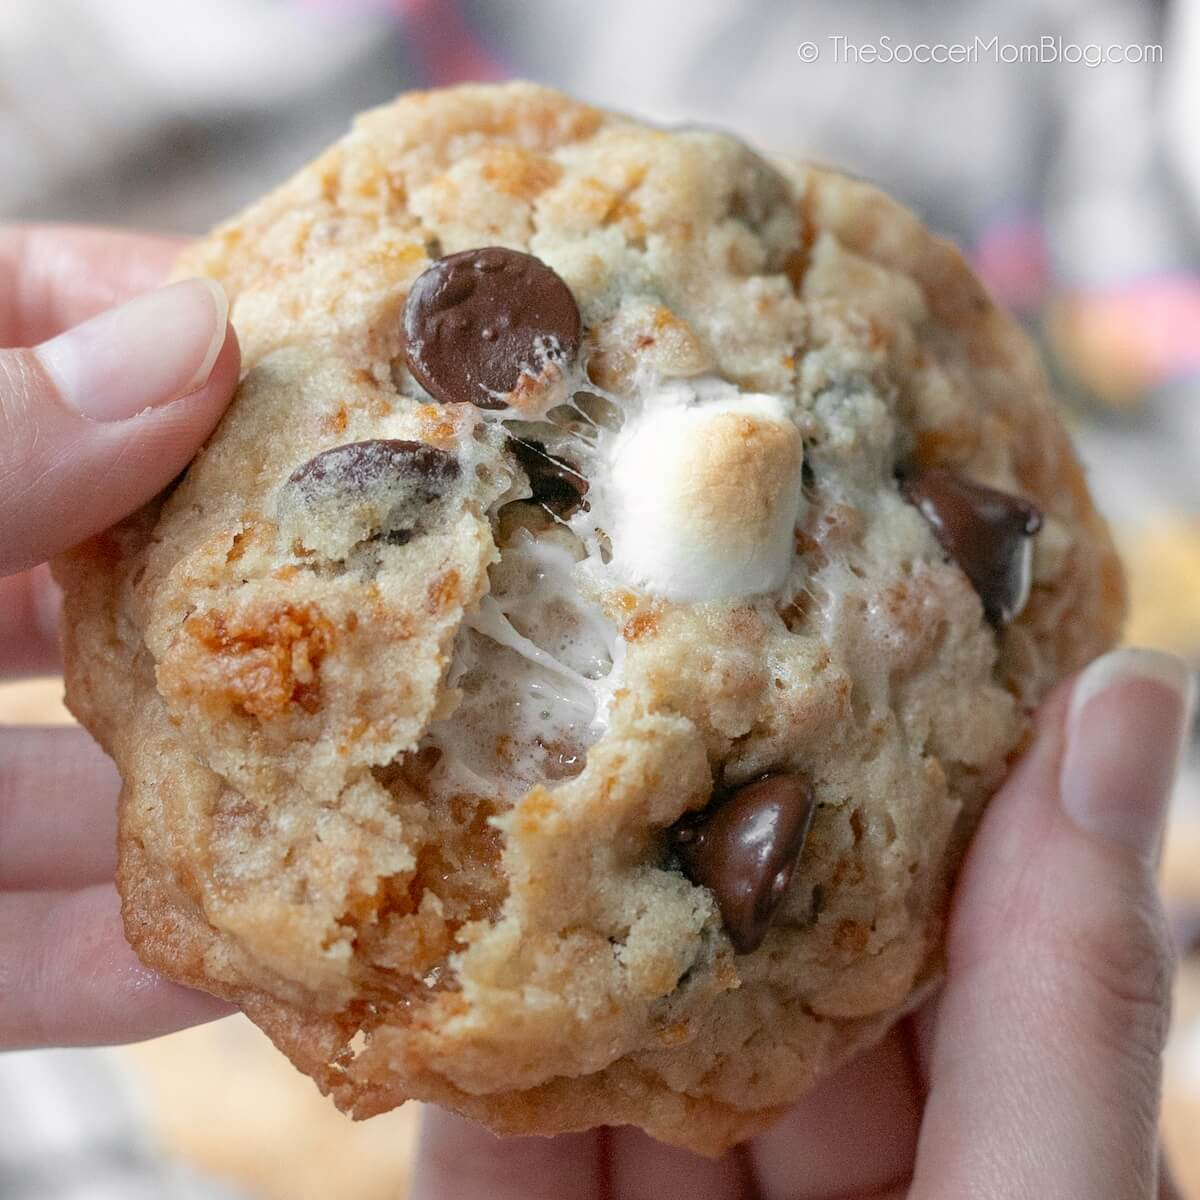 tearing cookie open with melted chocolate and marshmallow